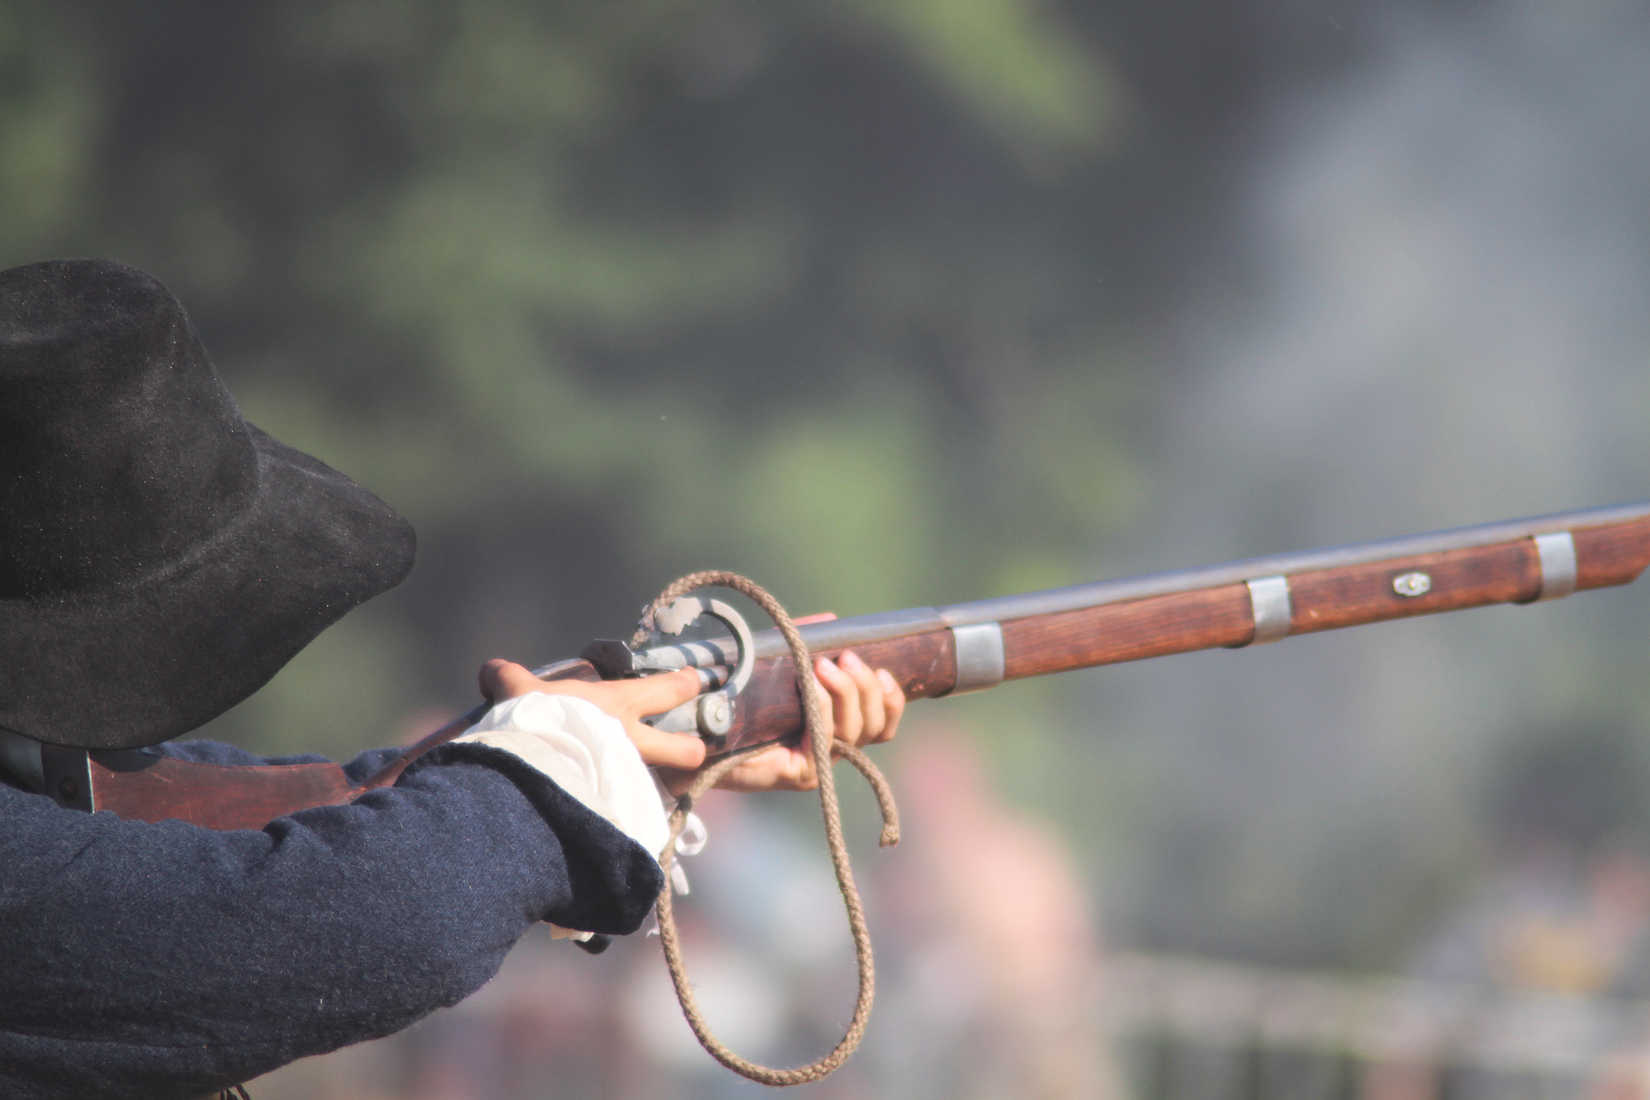 New Discovery Channel Show Teaches History and Artistry of Firearms Craftsmanship